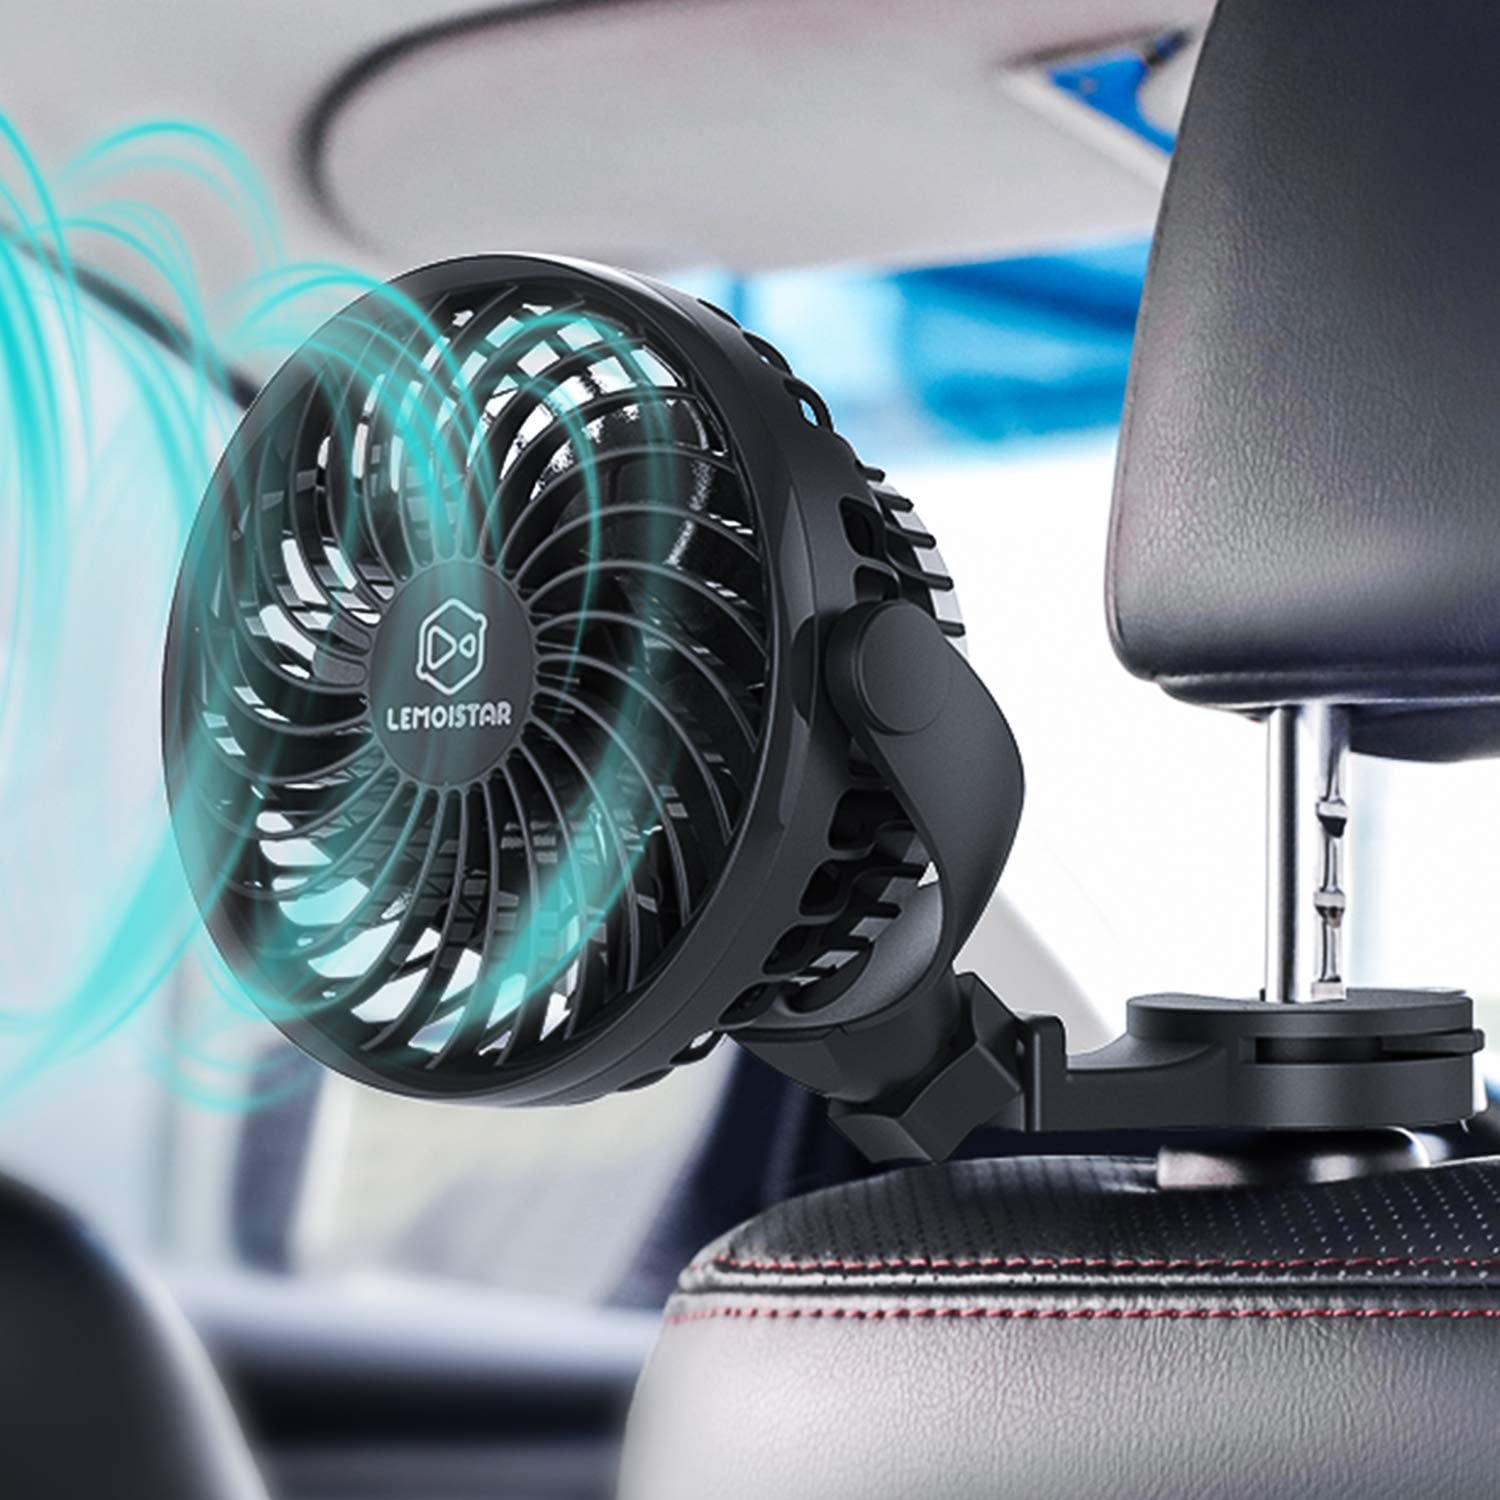 Baby Car Fan, USB & Battery Powered Car Circulator Fan with Multi-Directional Hook, 4 Speed, 360° Rotatation, Personal Cooling Vehicle Fan for Car, Rear&Back Seat Passenger Baby Pet Desk Office Camping